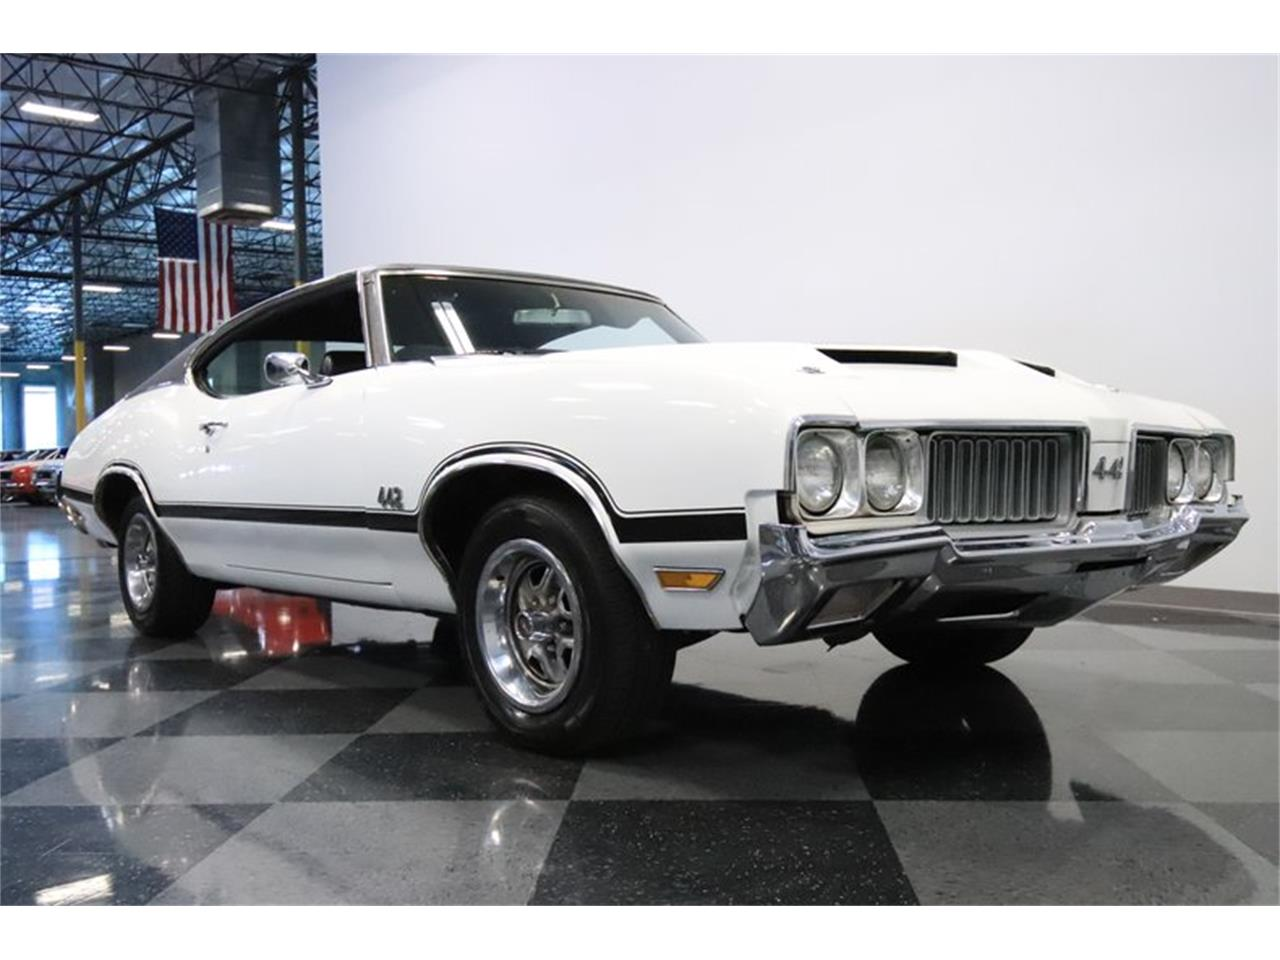 Large Picture of Classic '70 Oldsmobile 442 located in Arizona - $34,995.00 Offered by Streetside Classics - Phoenix - Q7BT